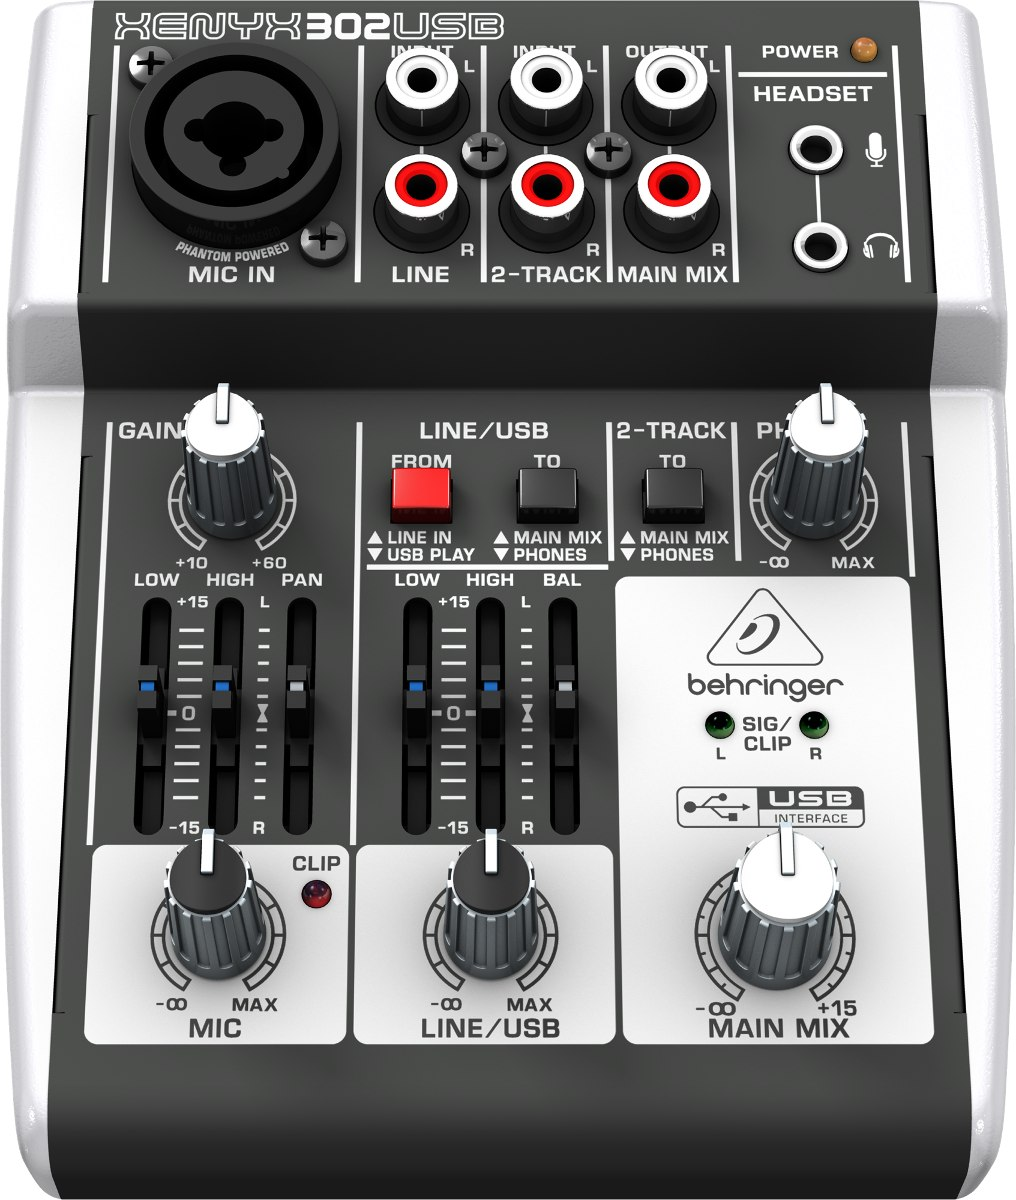 Mesa de som behringer xenyx 302usb mixer interface de - Table de mixage virtuel a telecharger gratuitement ...